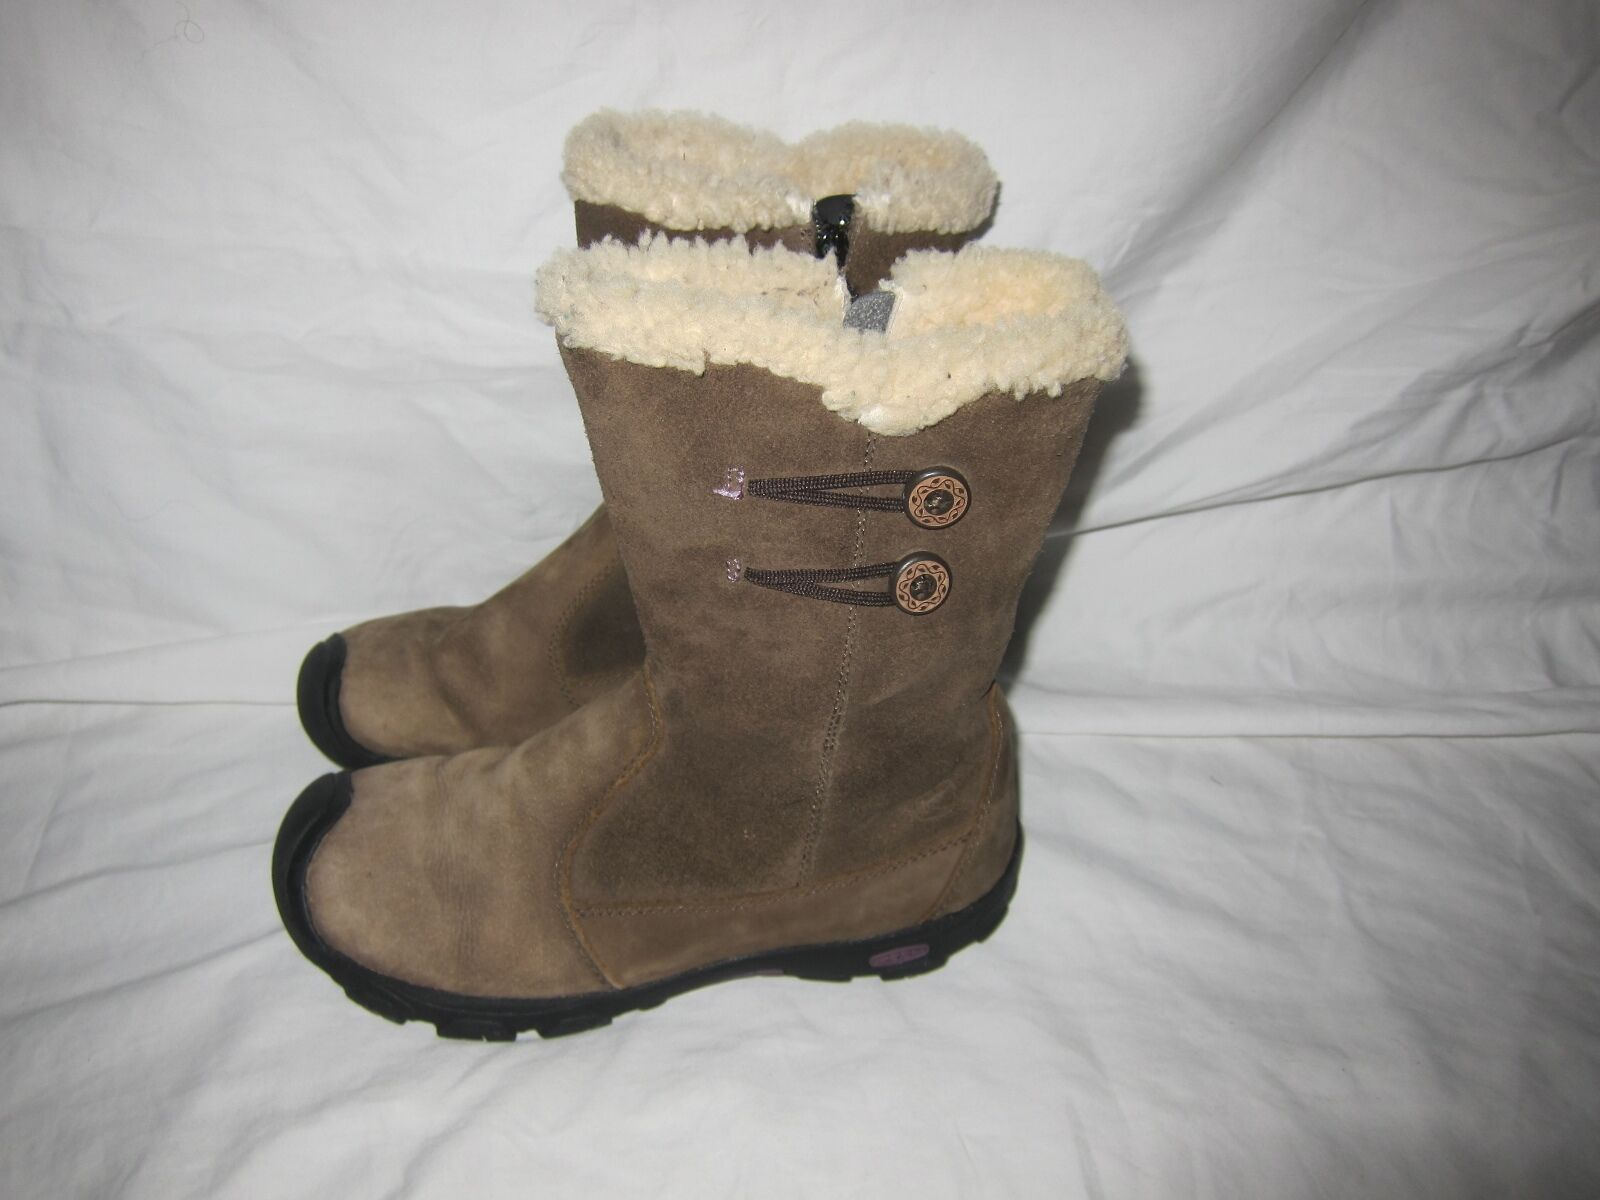 n ° 1 online Awesome  Keen donna lined lined lined winter stivali, Dimensione 7, Good Shape side zipper  una marca di lusso